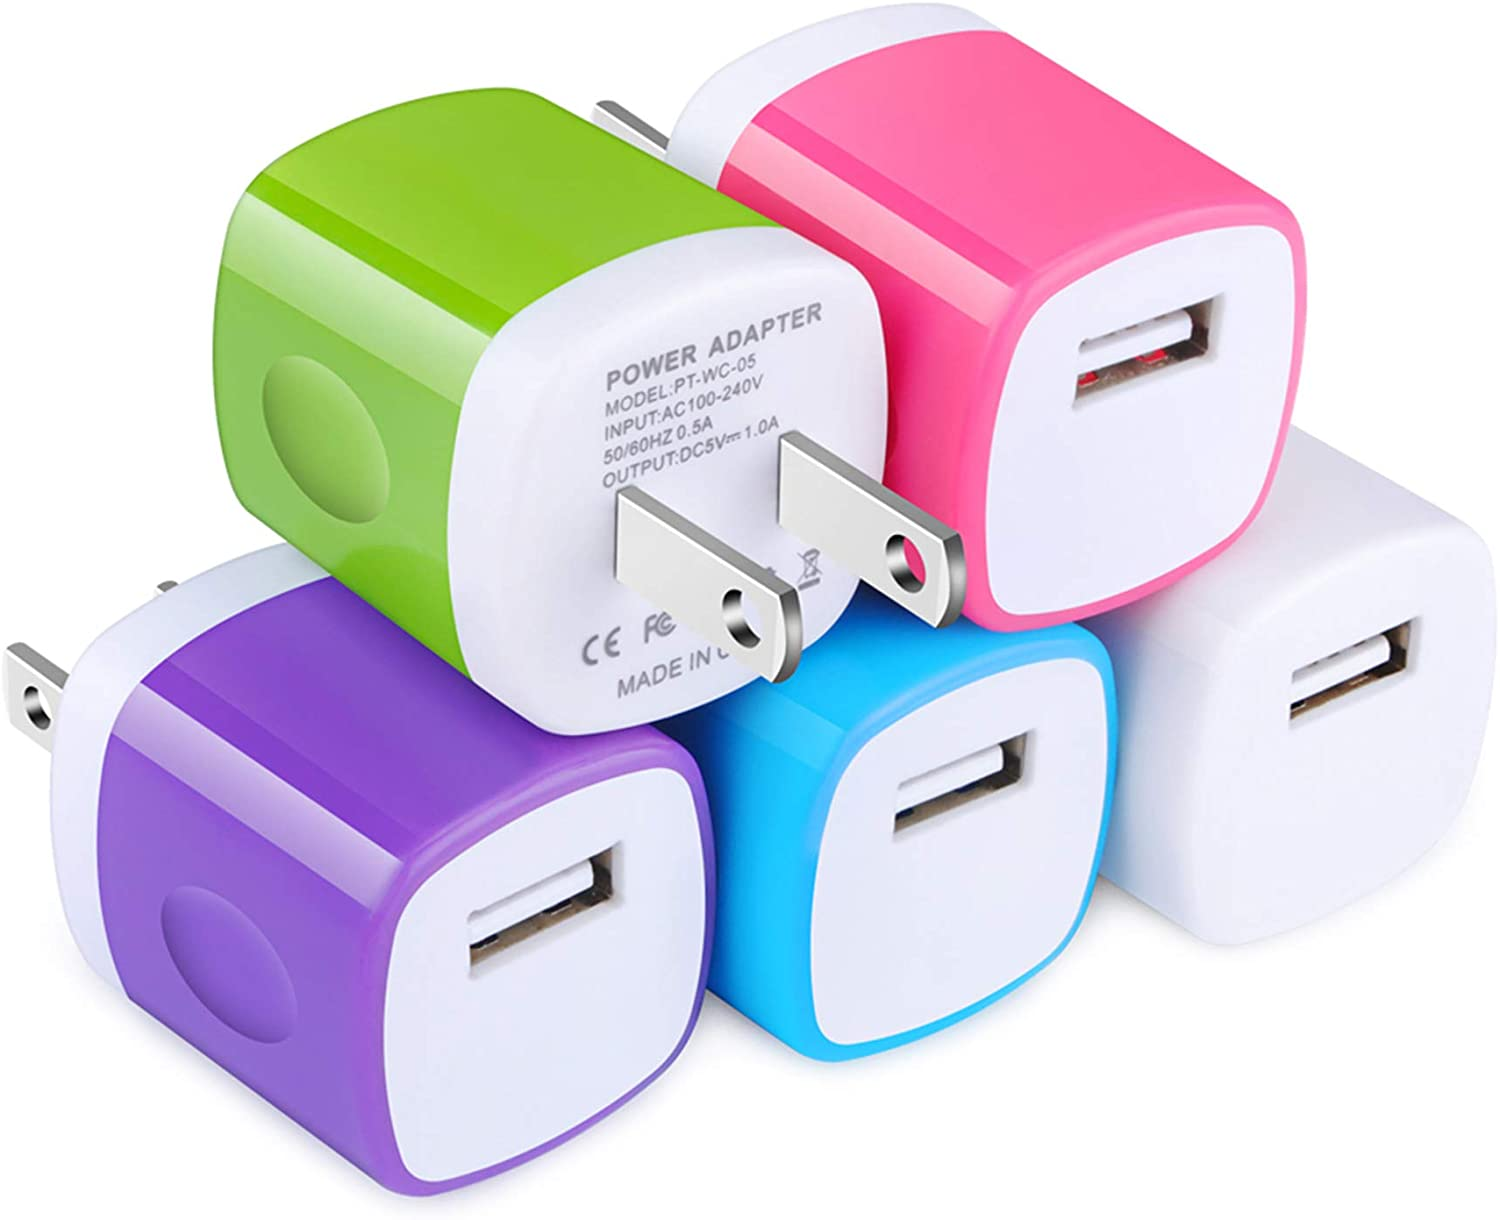 USB Wall Charger,TePoo 5 Pack Single Port 1A/5V Charging Block Power Adapter Plug Compatible with iPhone Xs Max/XR/X/8/7/6S/5,Samsung Galaxy S10e/S9/S8 Plus/Note 9 8,LG G8 G7,Moto,Pixel,Nexus,Android